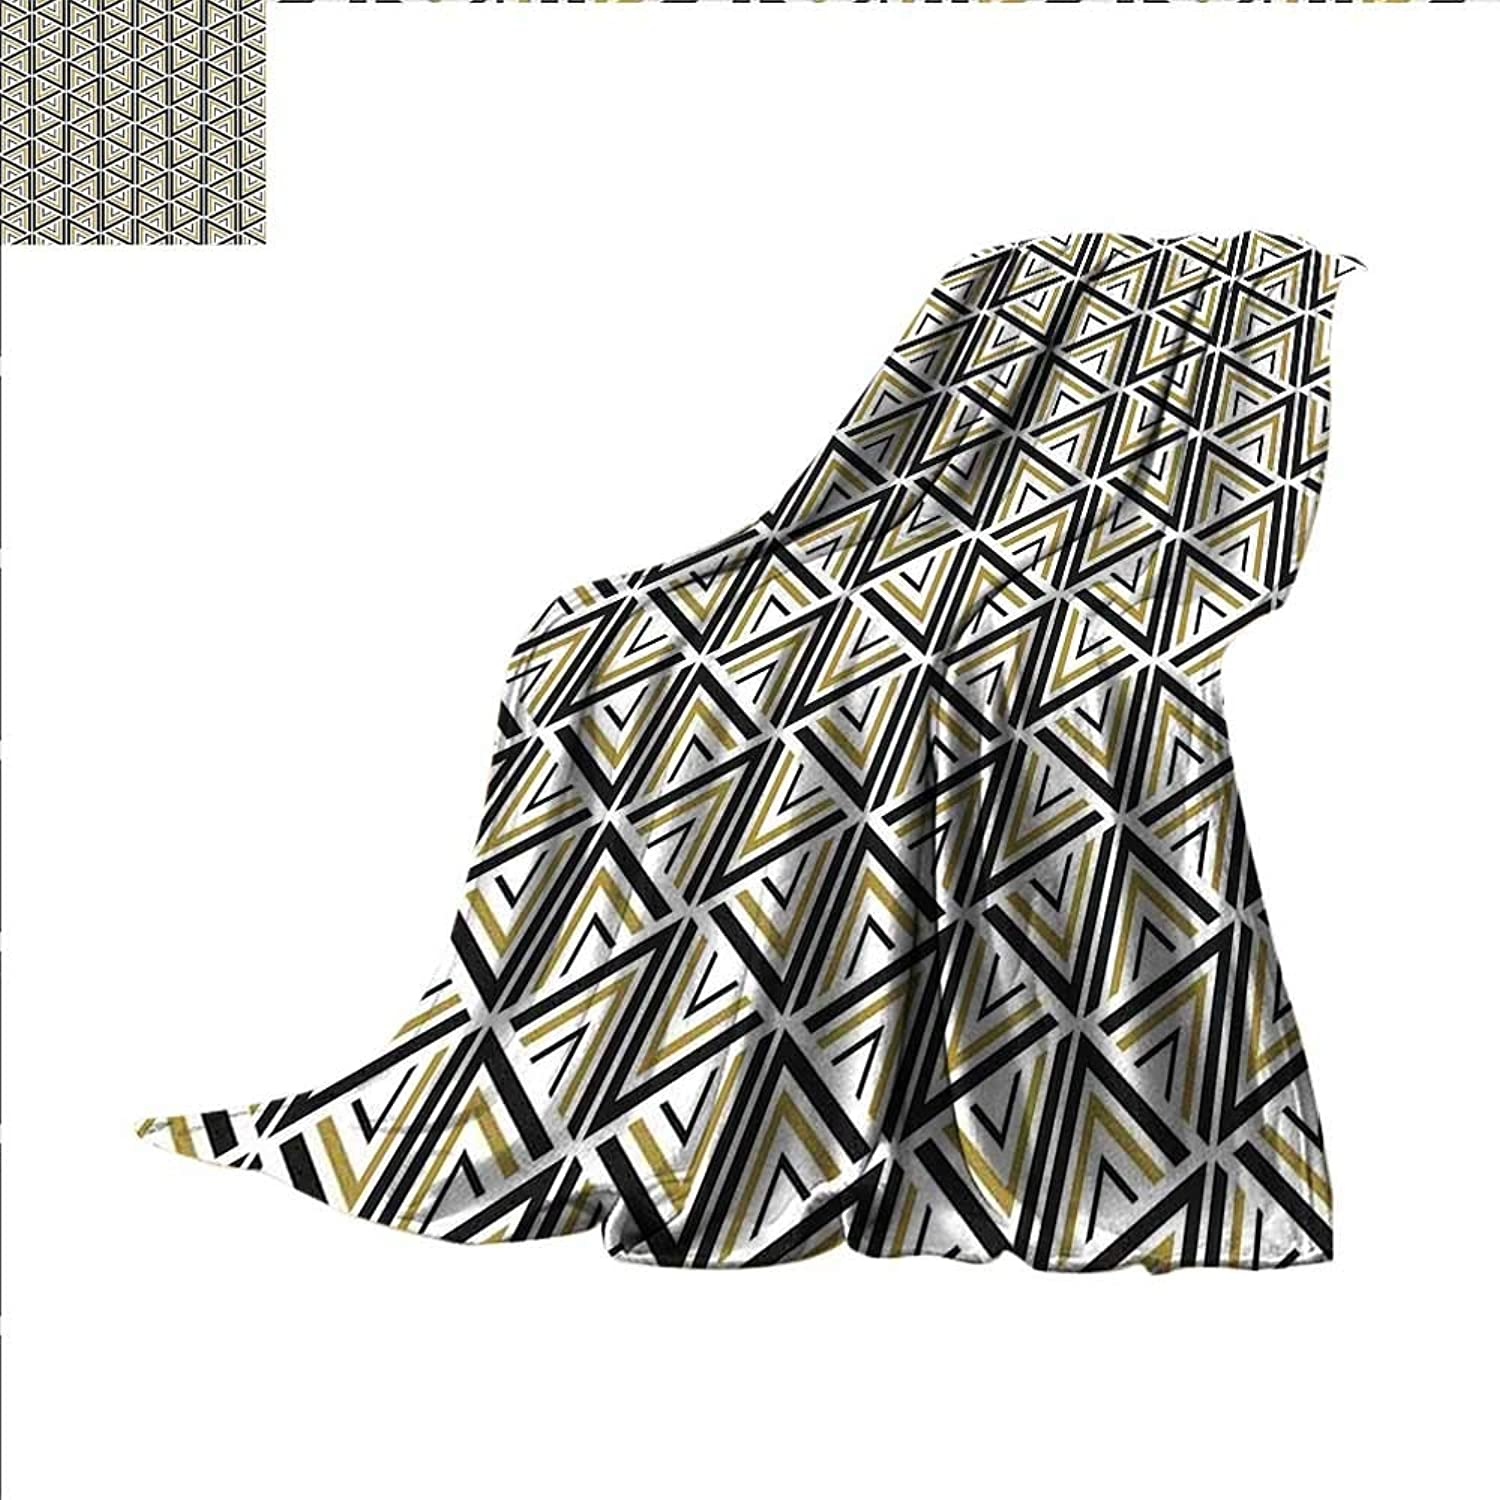 Smallbeefly Geometric Digital Printing Blanket Modern Stylish Triangle and Diamond Repeating Line Tiling Figures Image Summer Quilt Comforter 60 x50  Mustard and Black